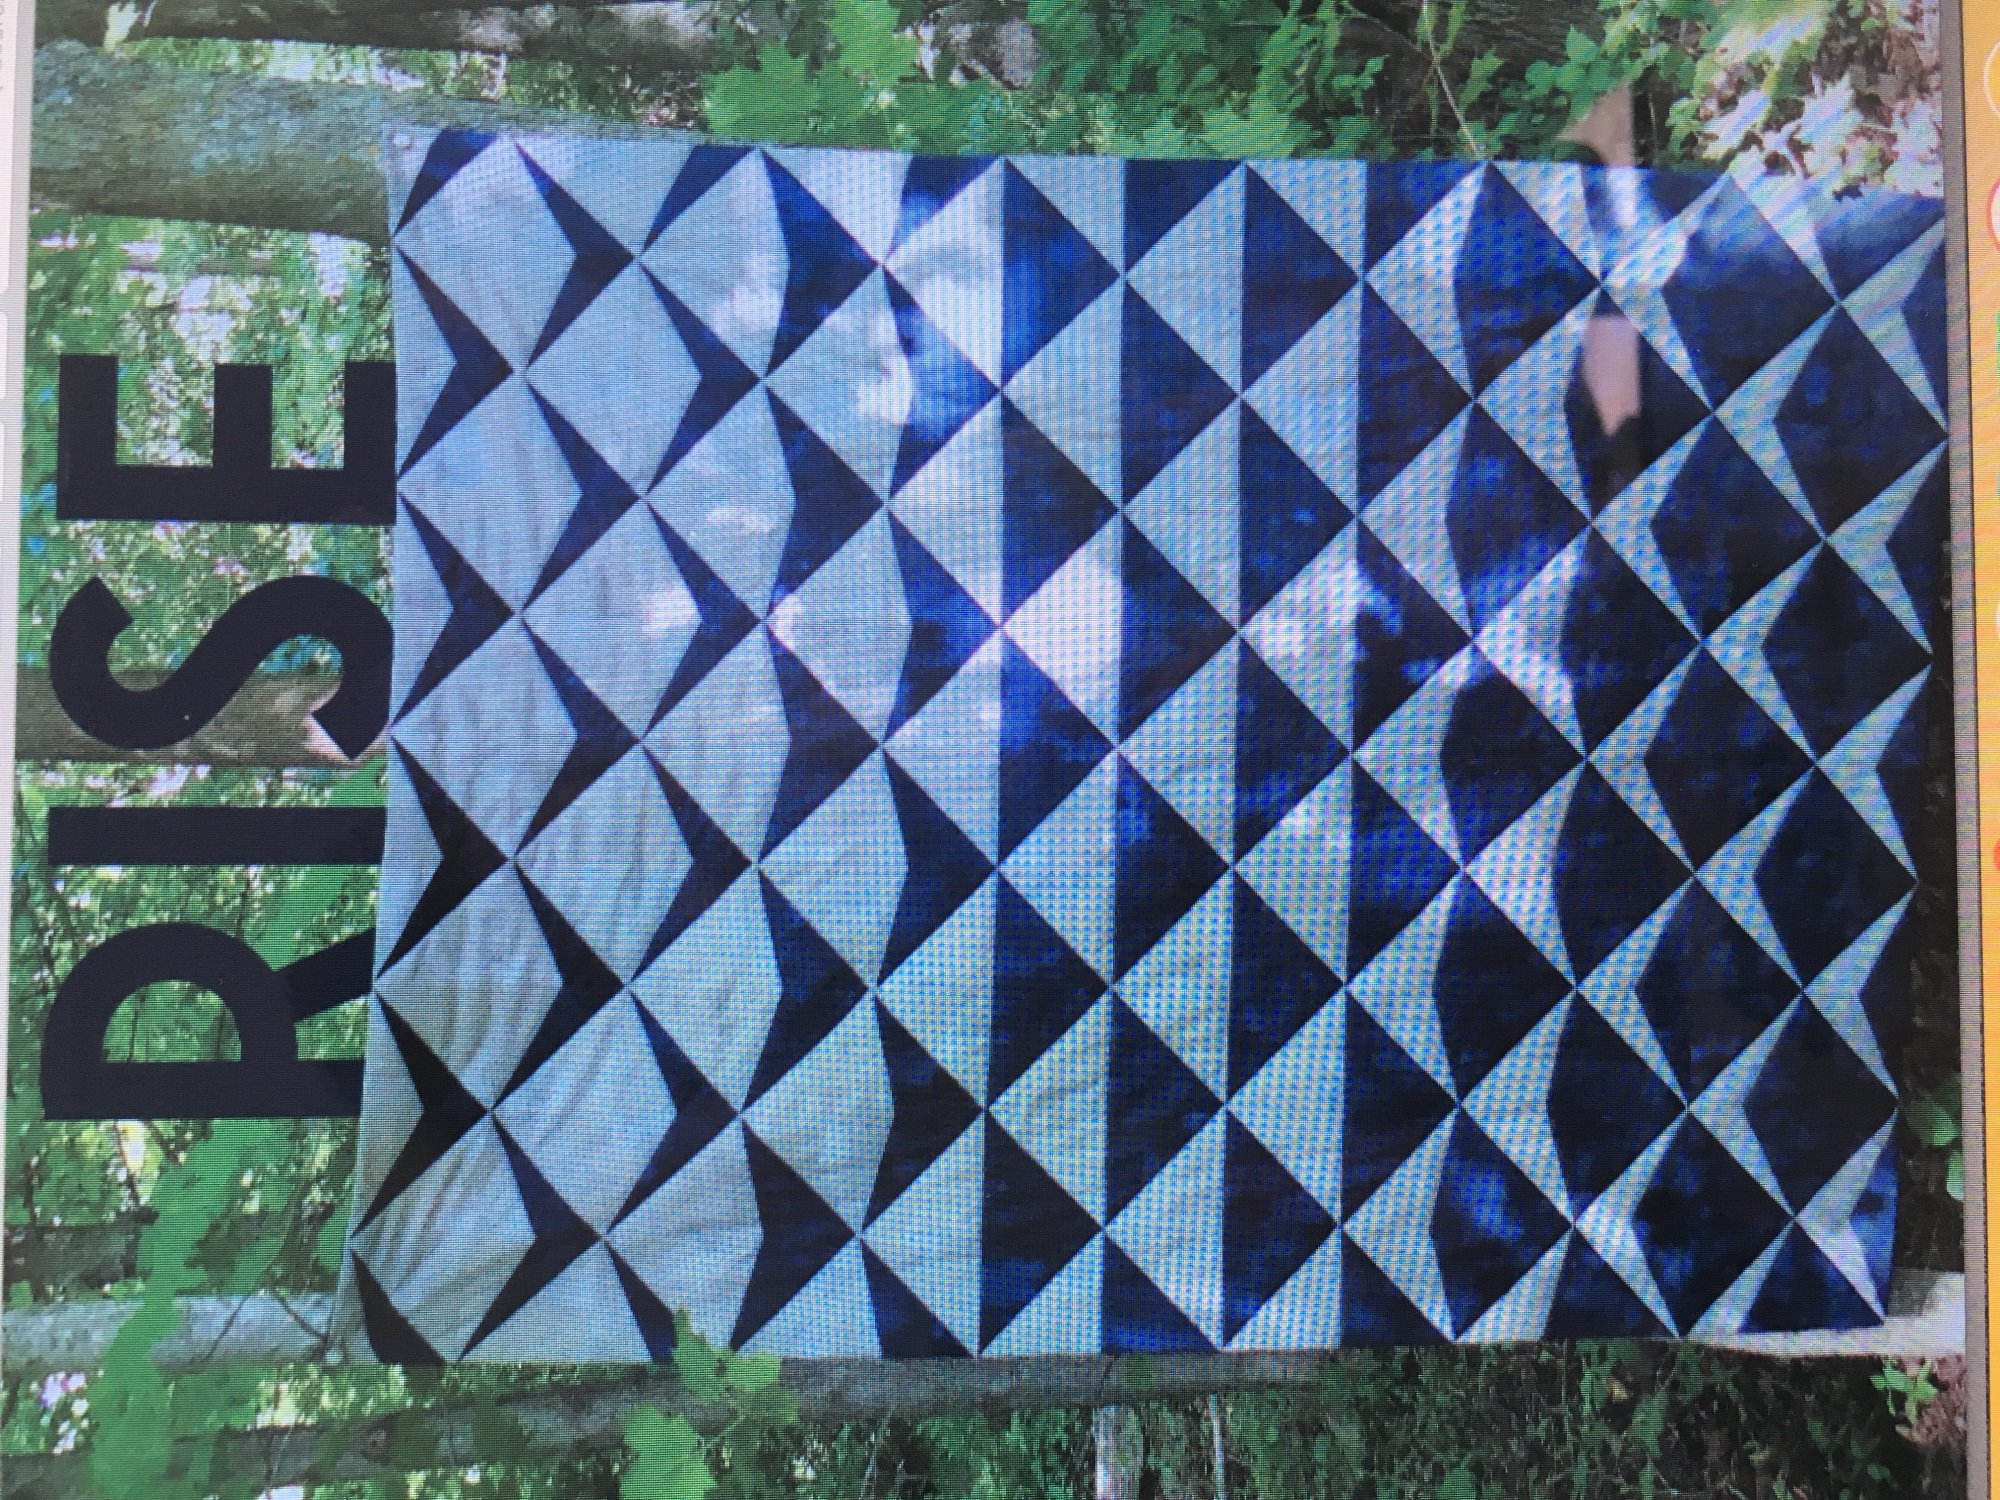 Rise Quilt Pattern  -  Studio 26 by Lethargic Lass- PDF Download